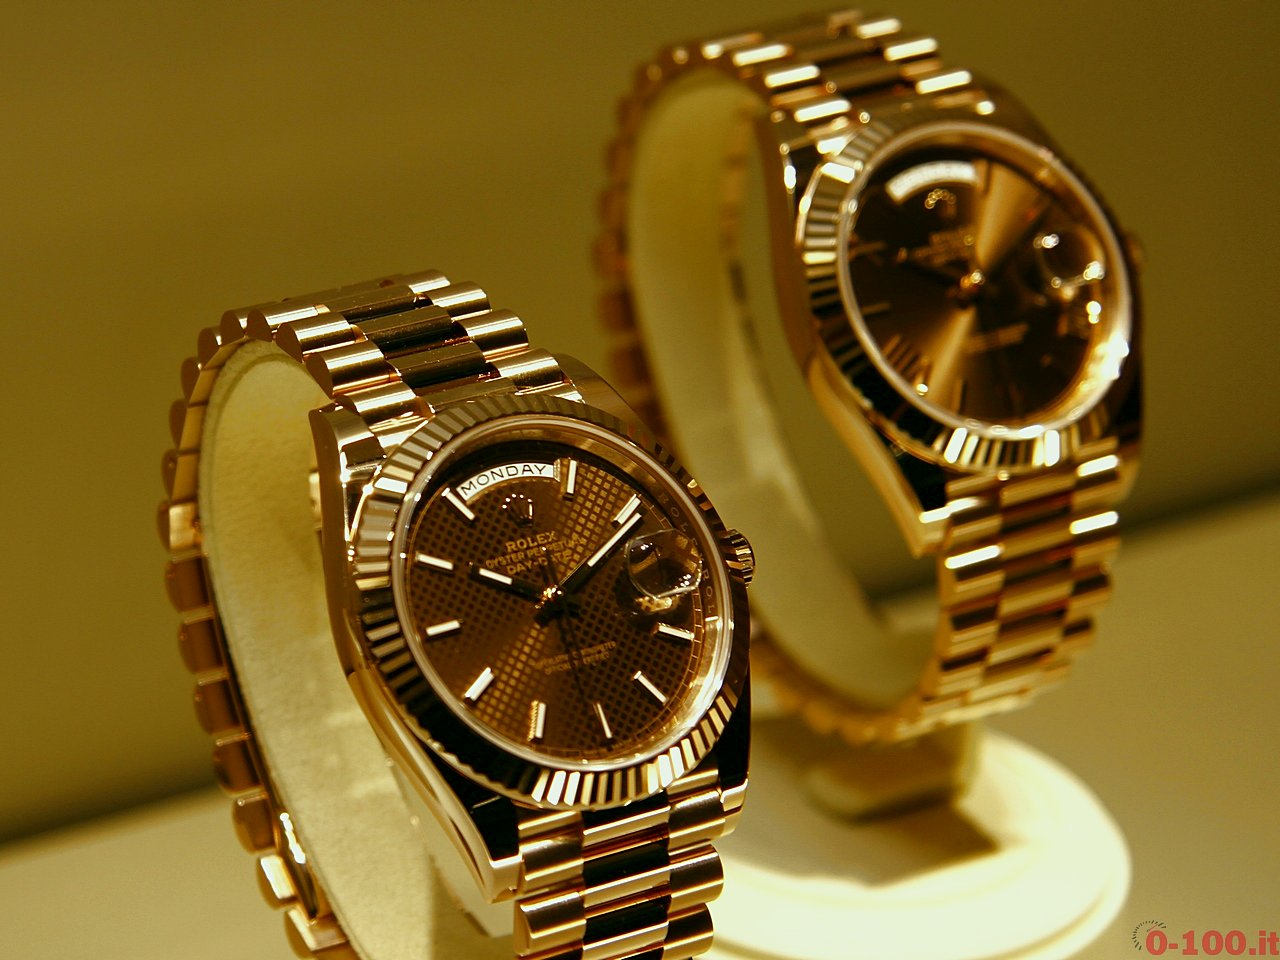 baselworld-2015_rolex-day-date-40-0-100_17